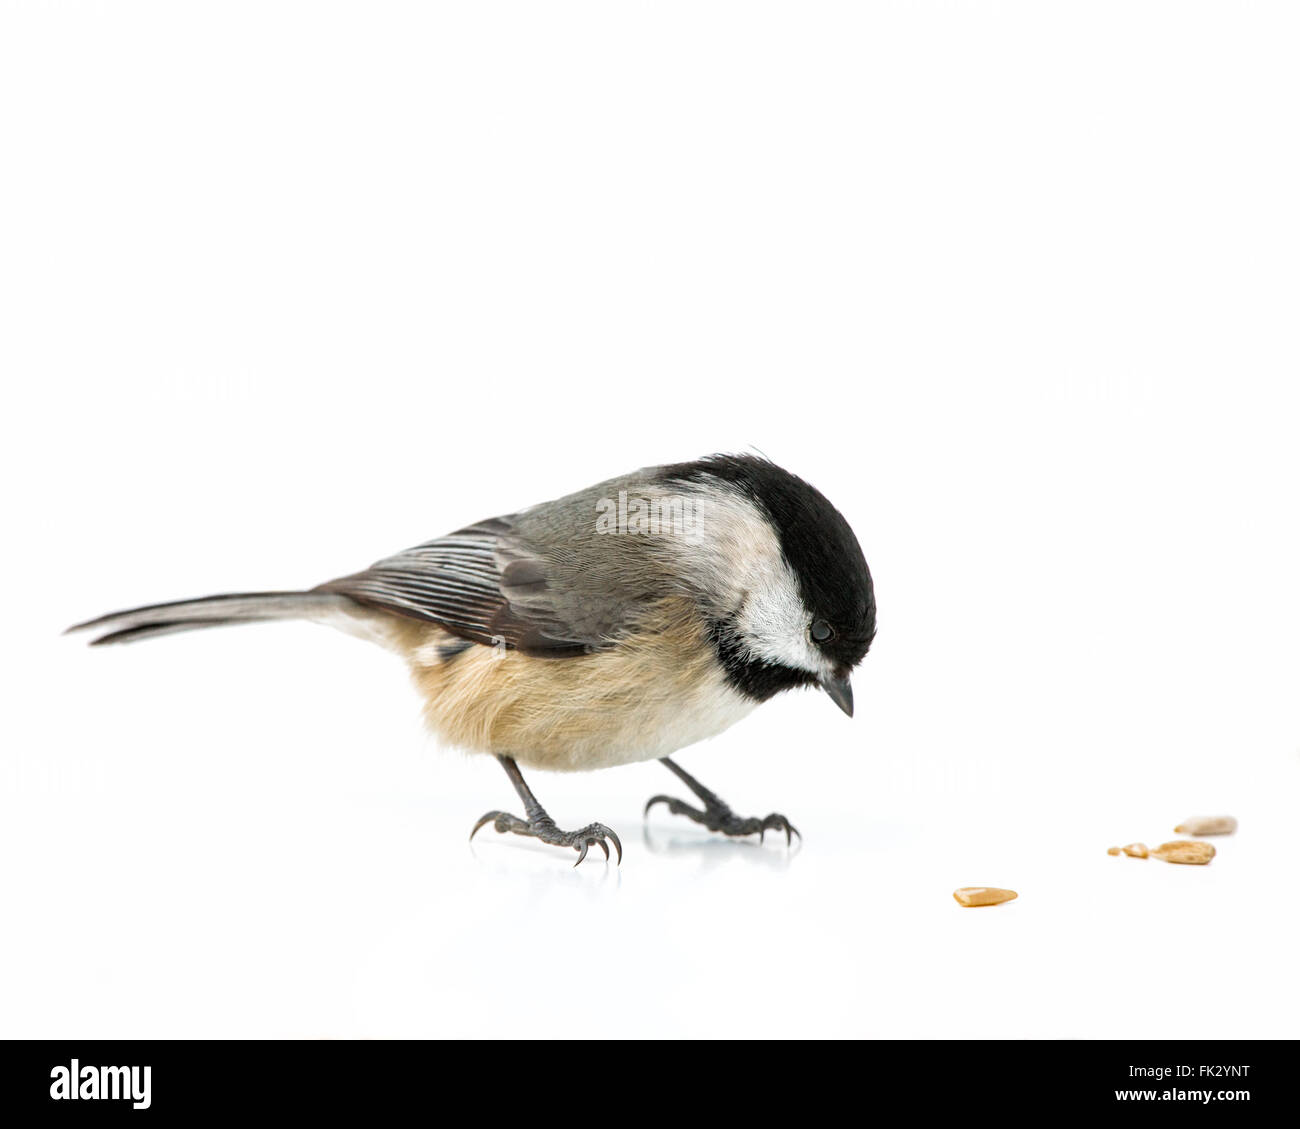 A Carolina chickadee on a white background eating pine nuts. - Stock Image